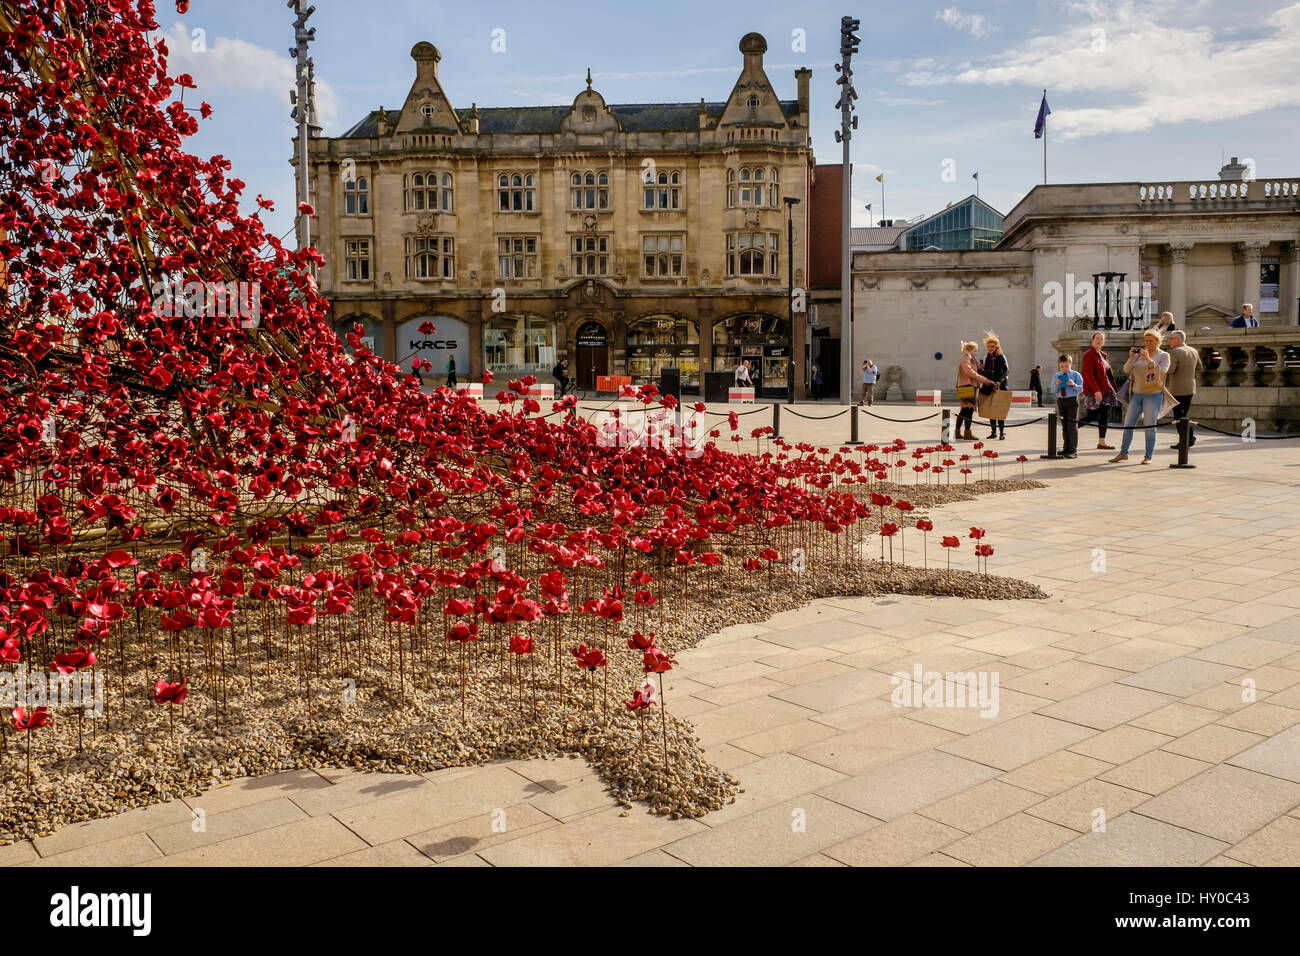 Poppies Weeping Window by artist Paul Cummings & designer Tom Piper to commemorate the First World War - Stock Image